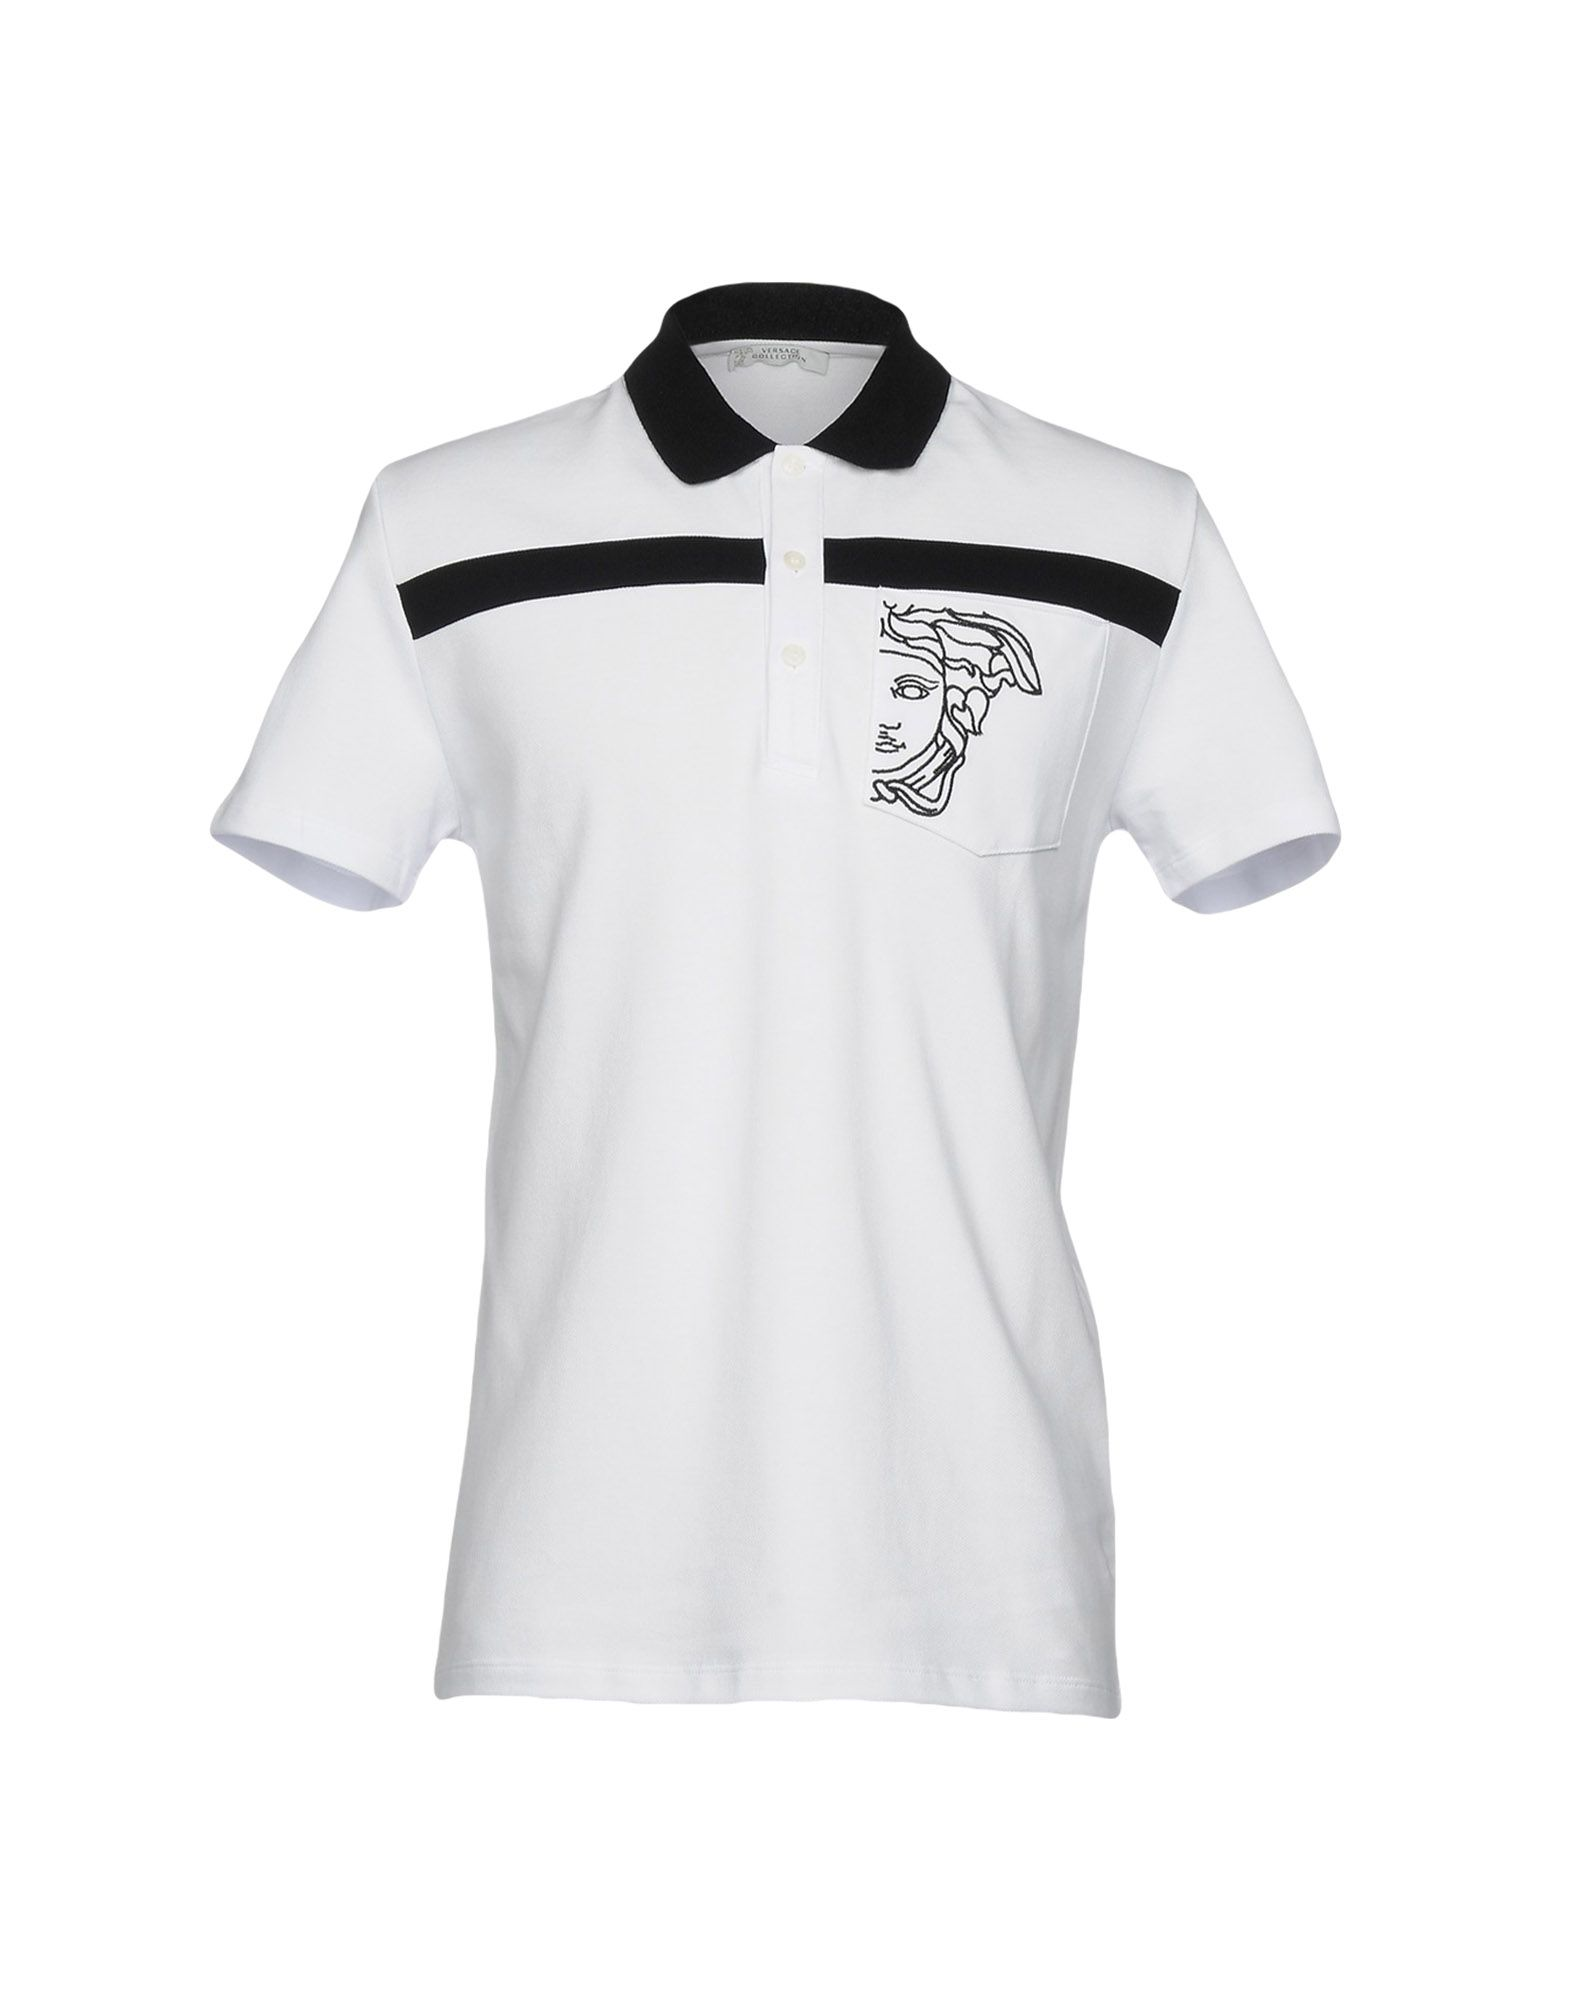 45de1a416e93 VERSACE COLLECTION · Polo shirt.   184.00. YOOX PRICE. YOOX offers a  curated selection of end of season clothing and ...